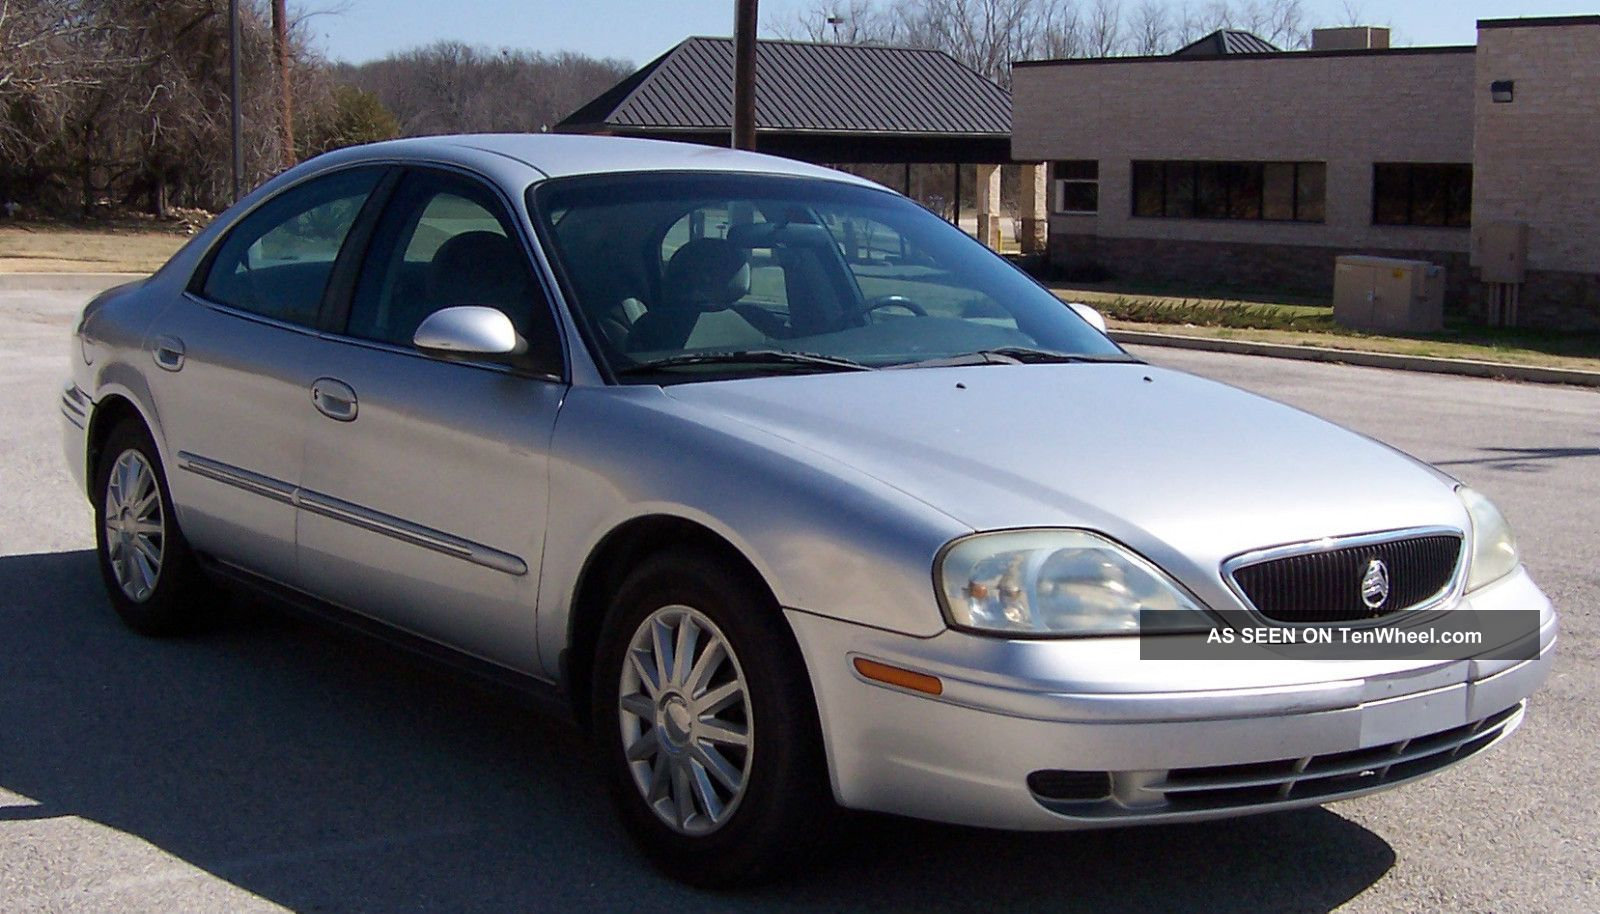 2002 Mercury Sable Gs Sedan Runs And Drives Great